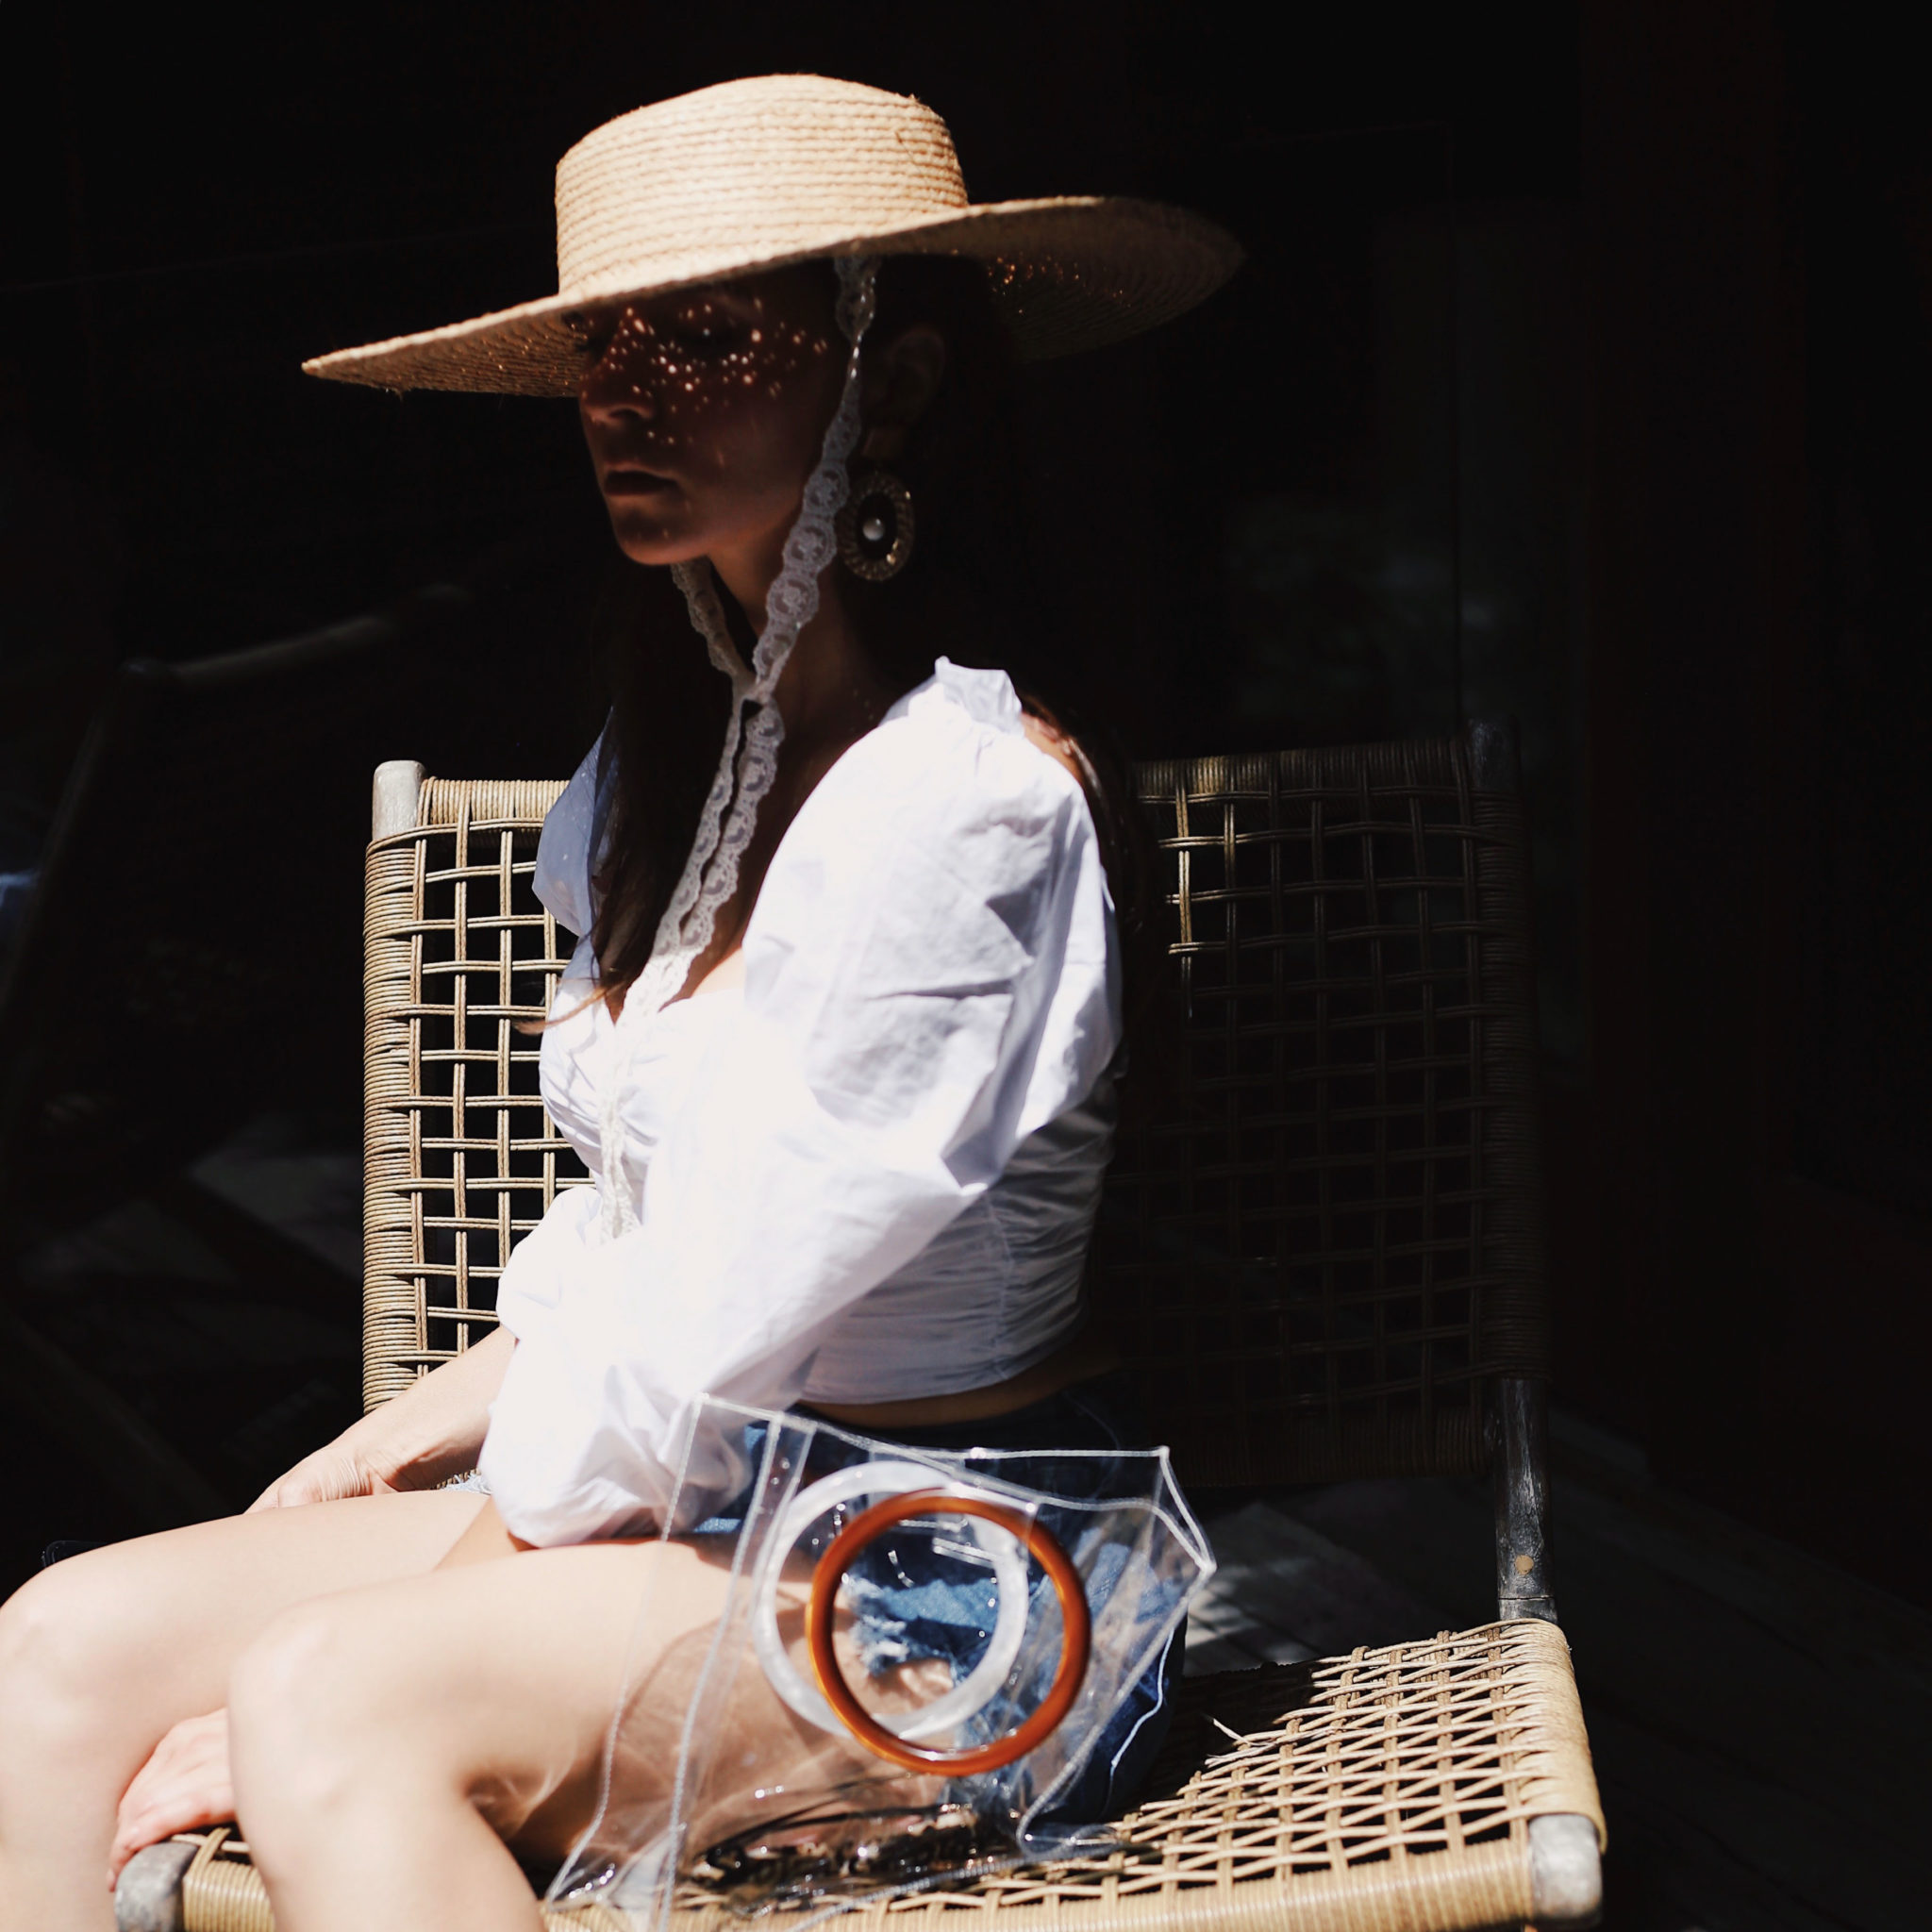 Where to buy trendy accessories that no one has. W concept raffia hat pvc bag and wood earrings - by Julia Comil fashion blogger